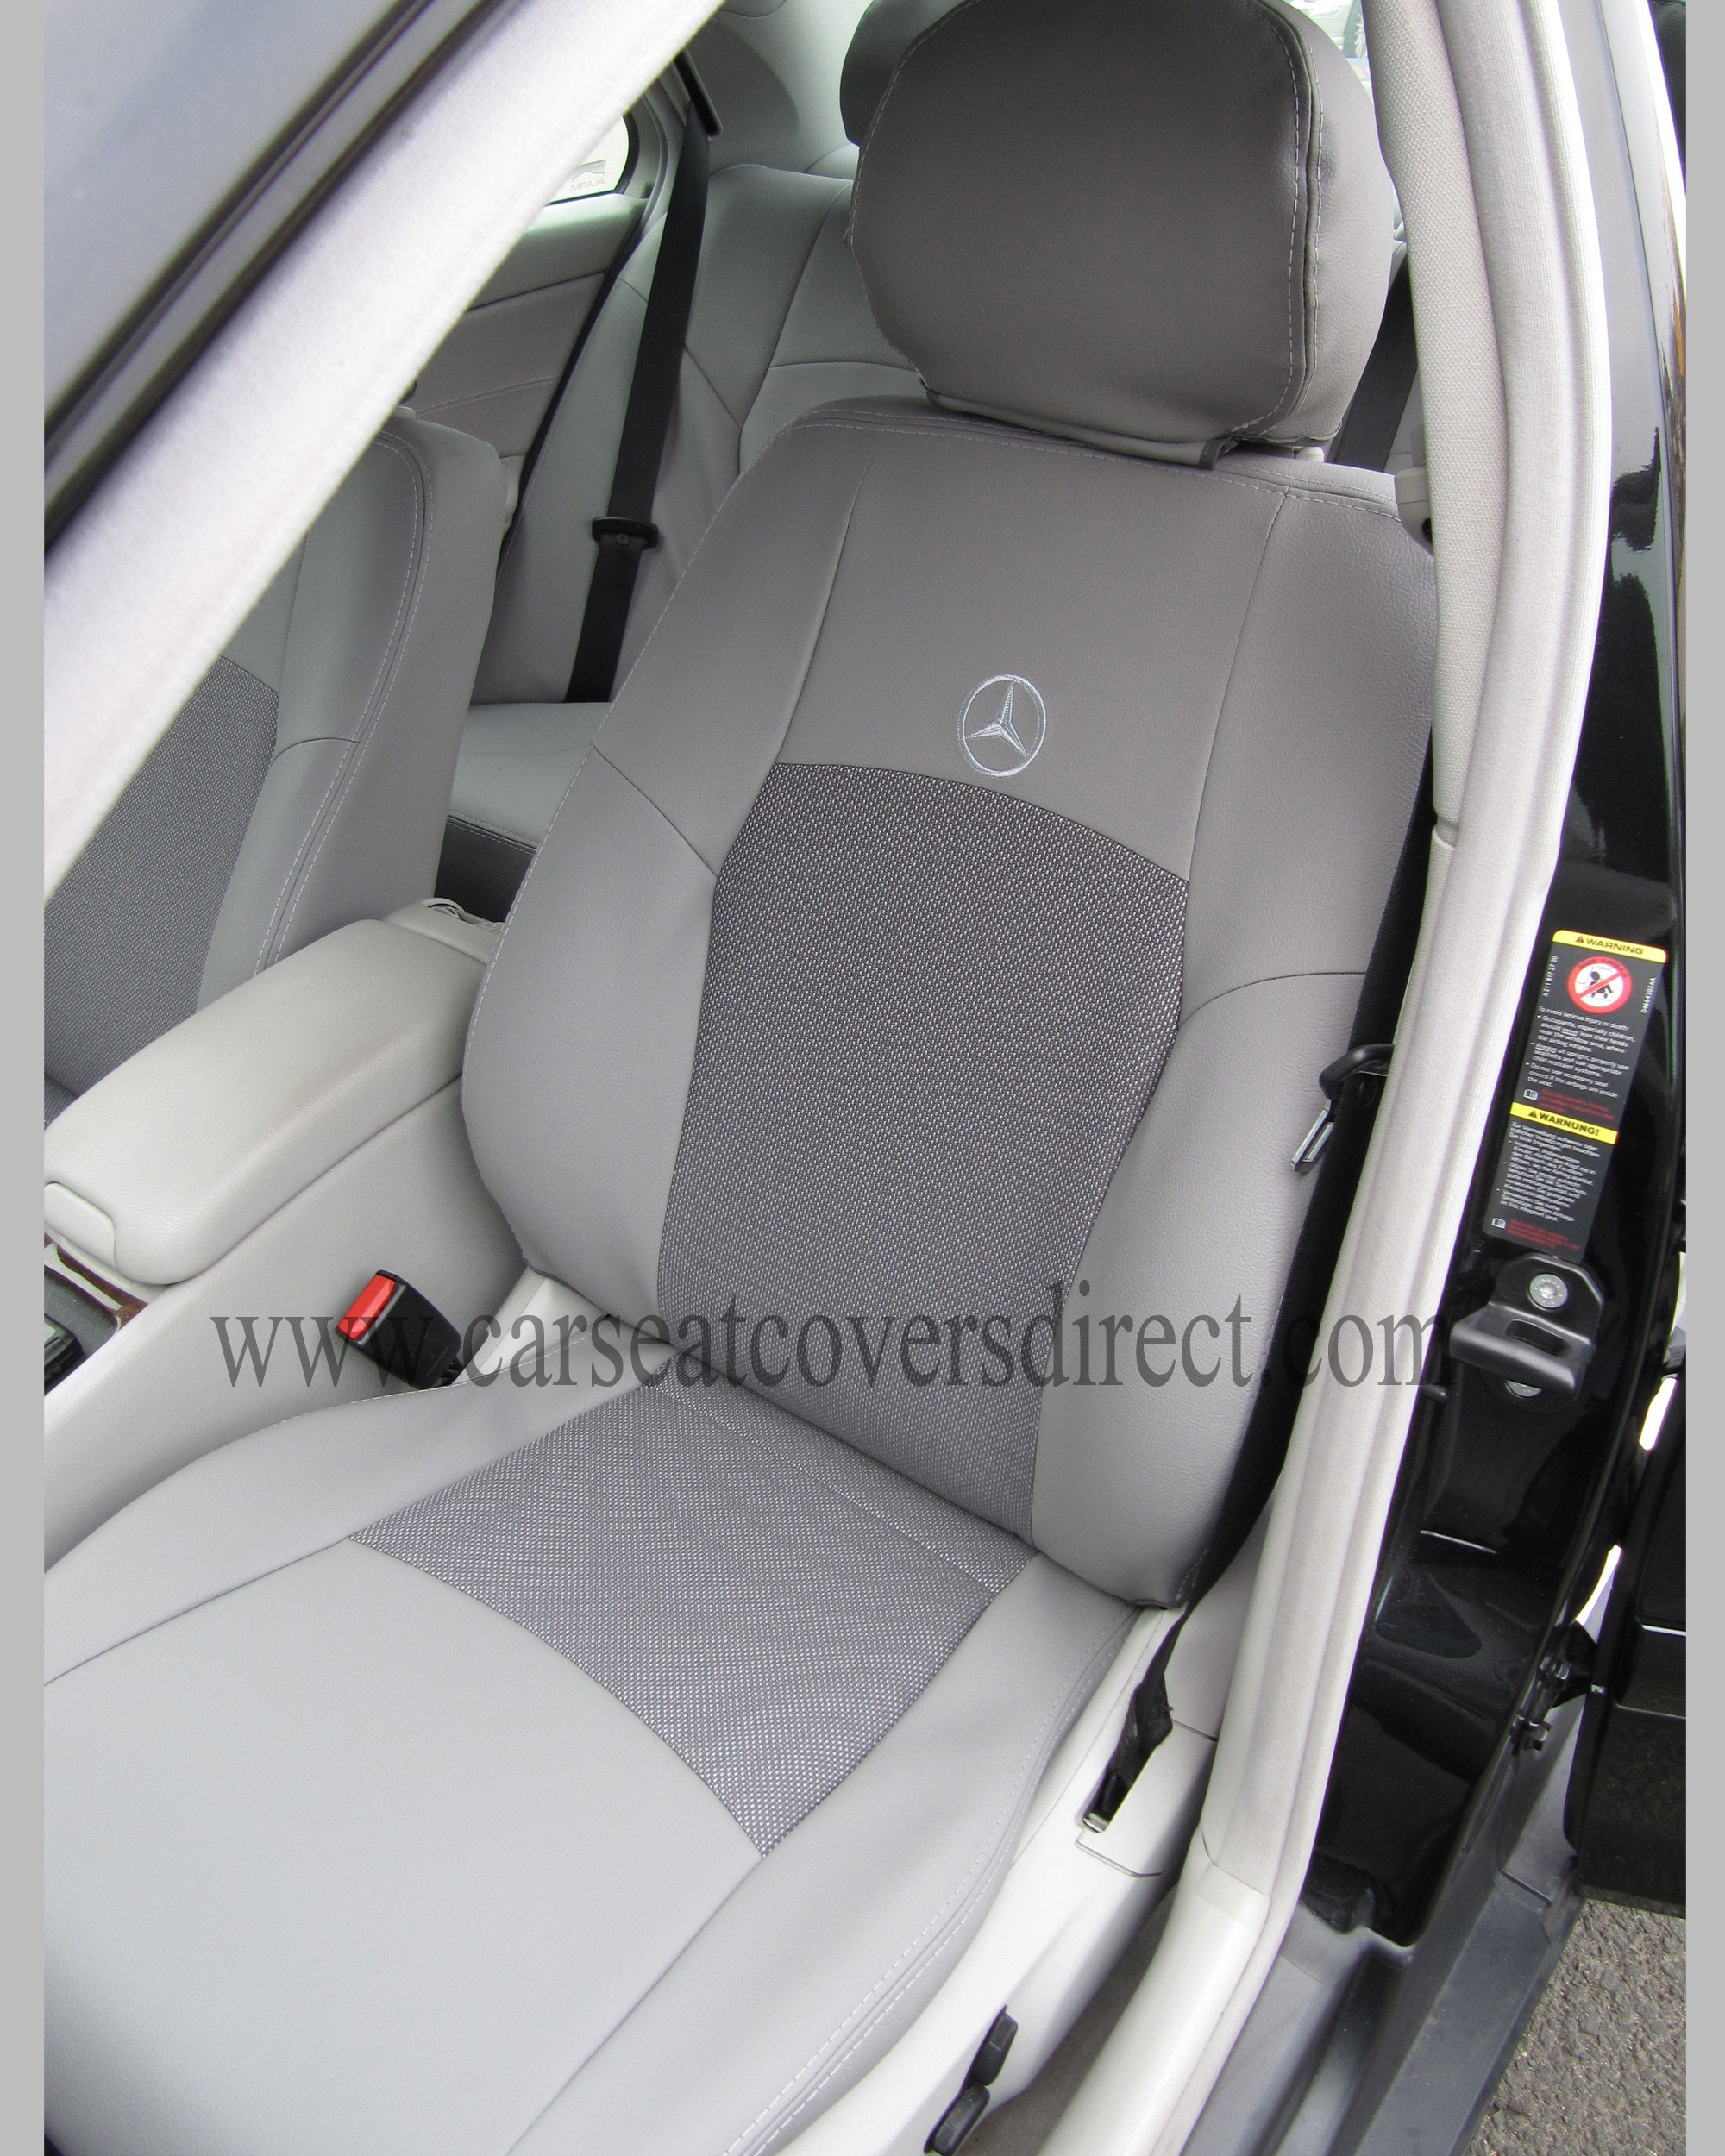 mercedes c class w203 grey leatherette seat covers car seat covers direct tailored to your choice. Black Bedroom Furniture Sets. Home Design Ideas